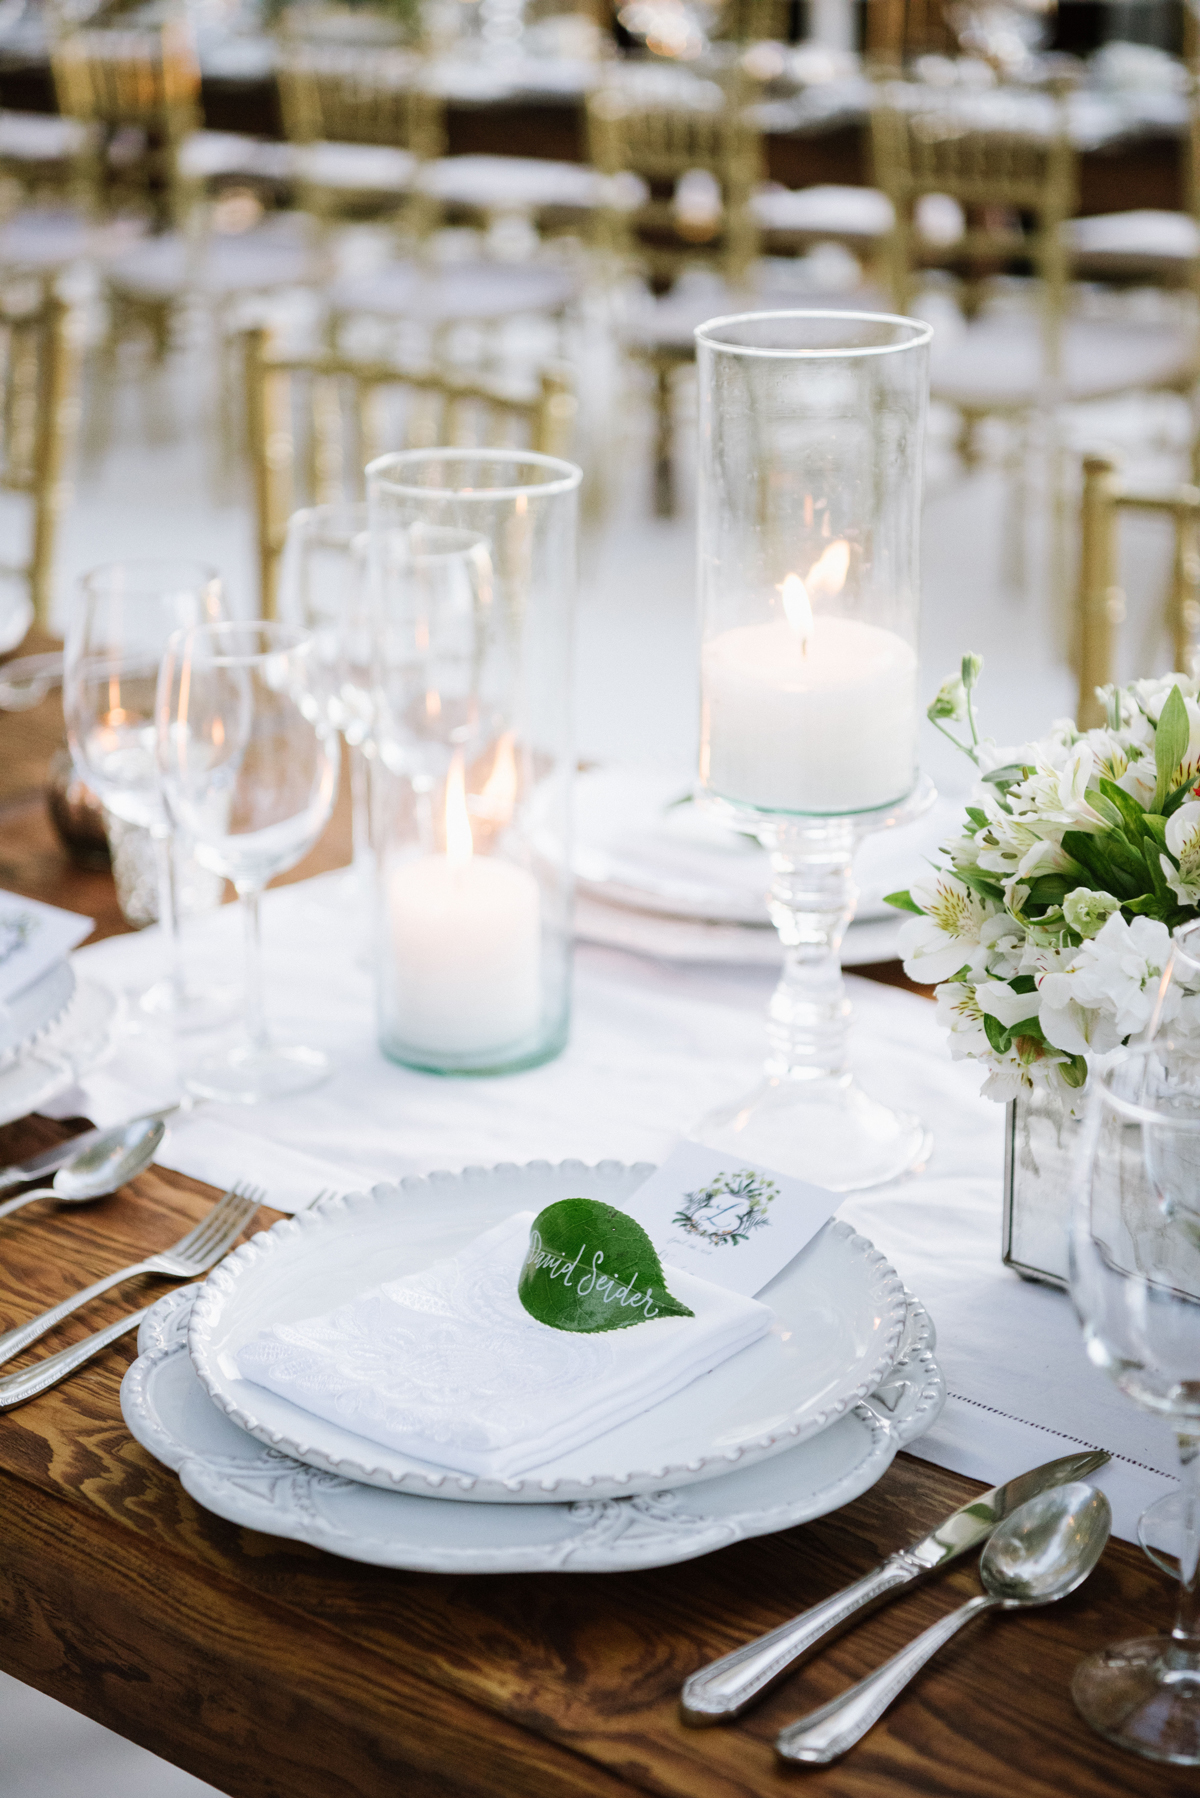 white place setting with leaves as place cards